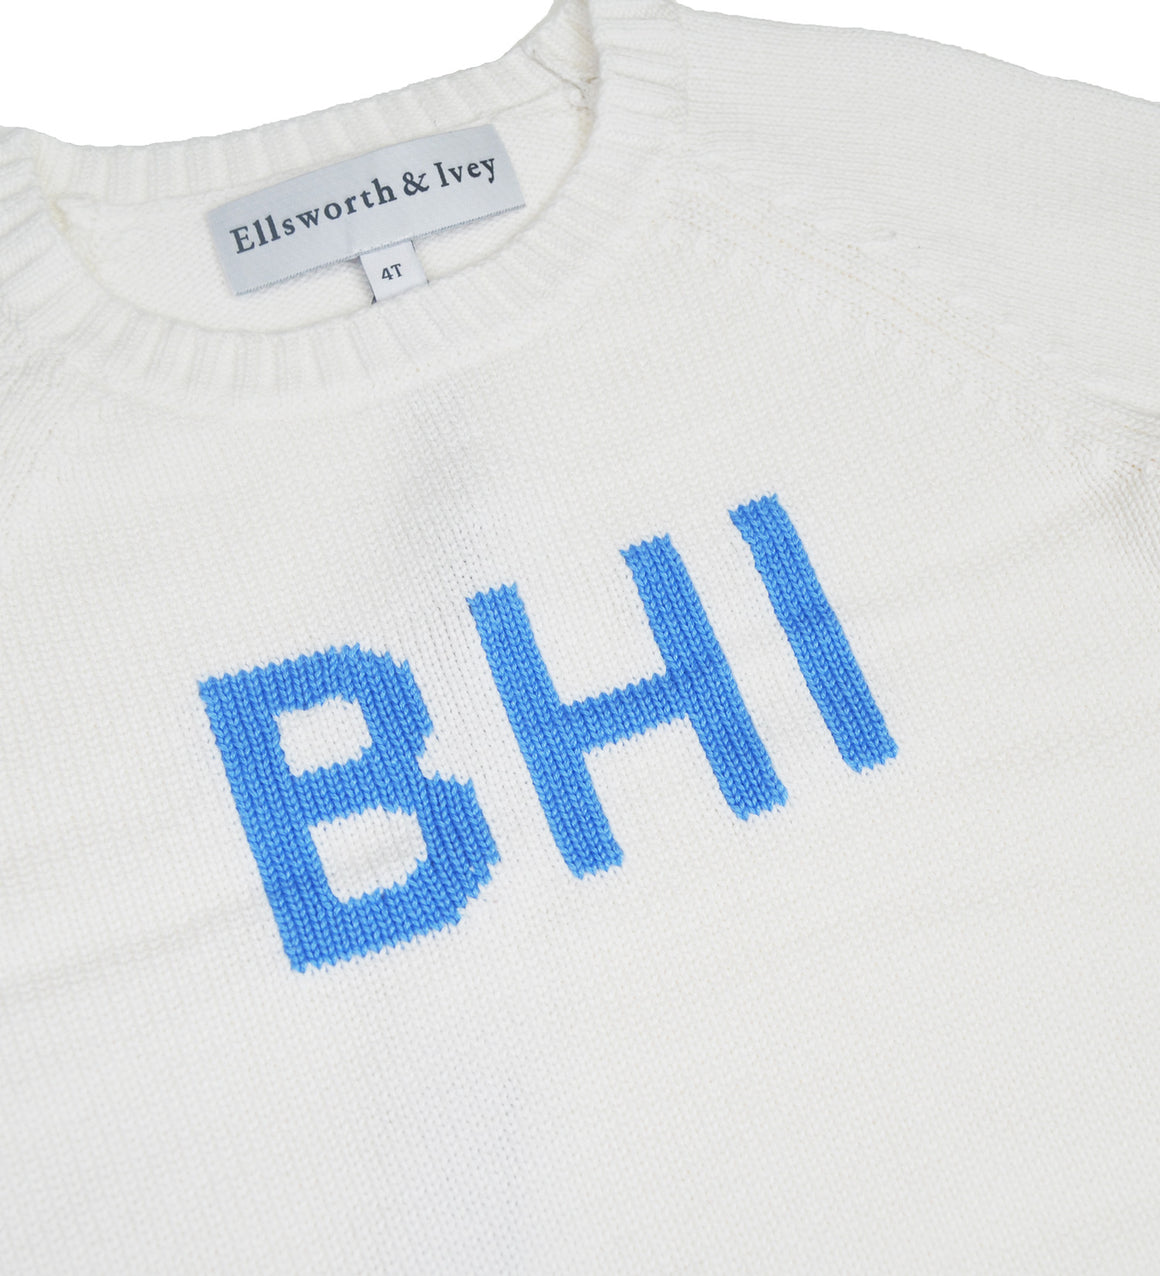 BHI Sweater - Youth - White